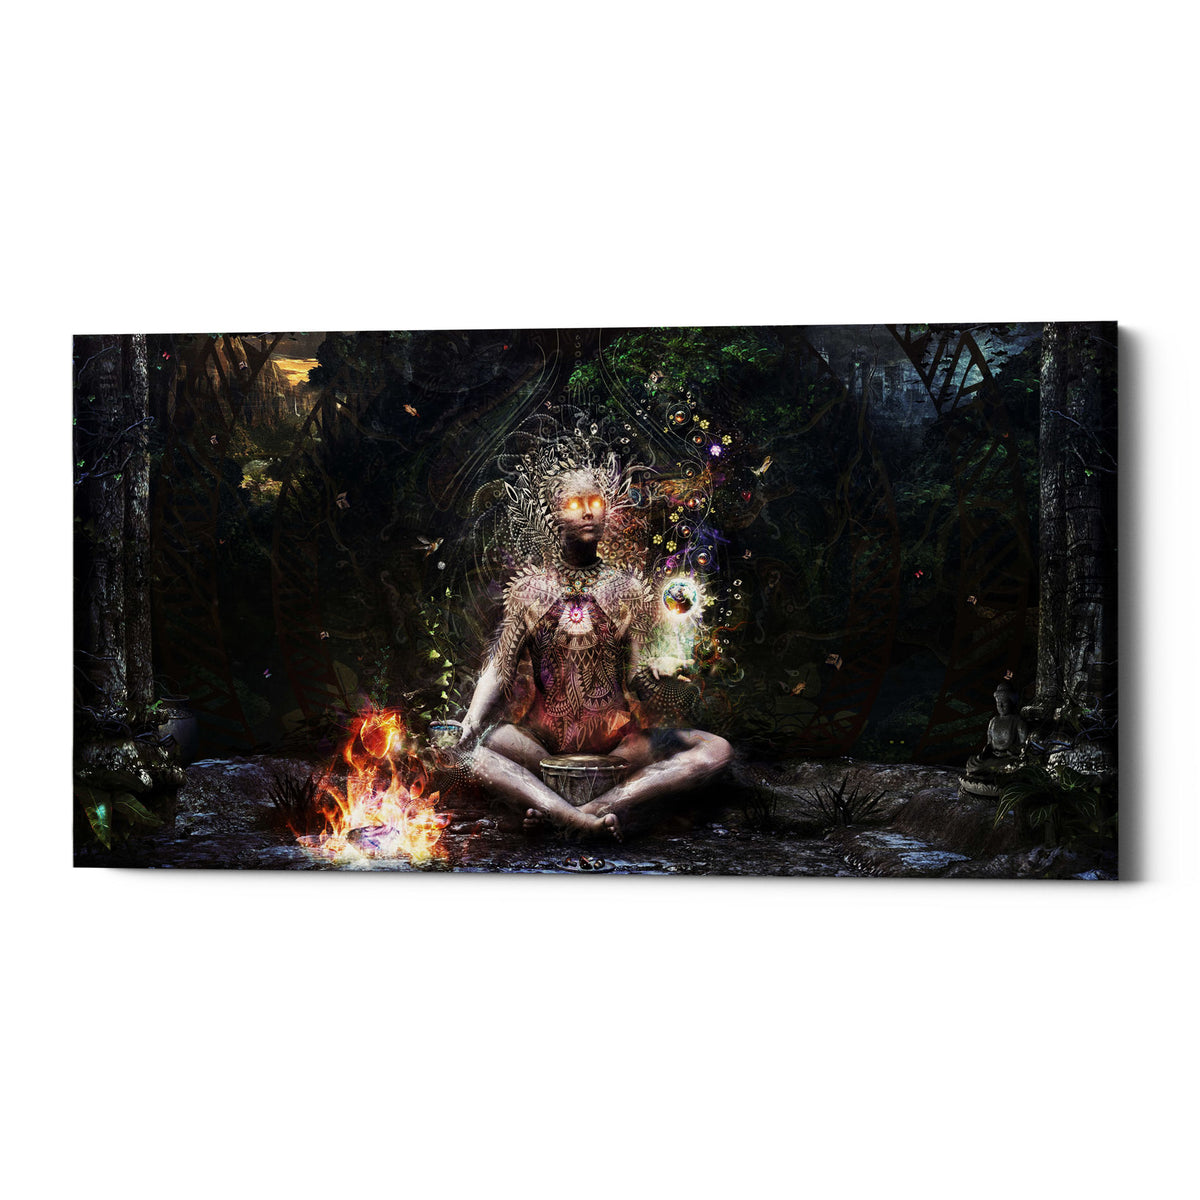 "Epic Graffiti ""Sacrament For The Sacred Dreamers"" by Cameron Gray, Giclee Canvas Wall Art"